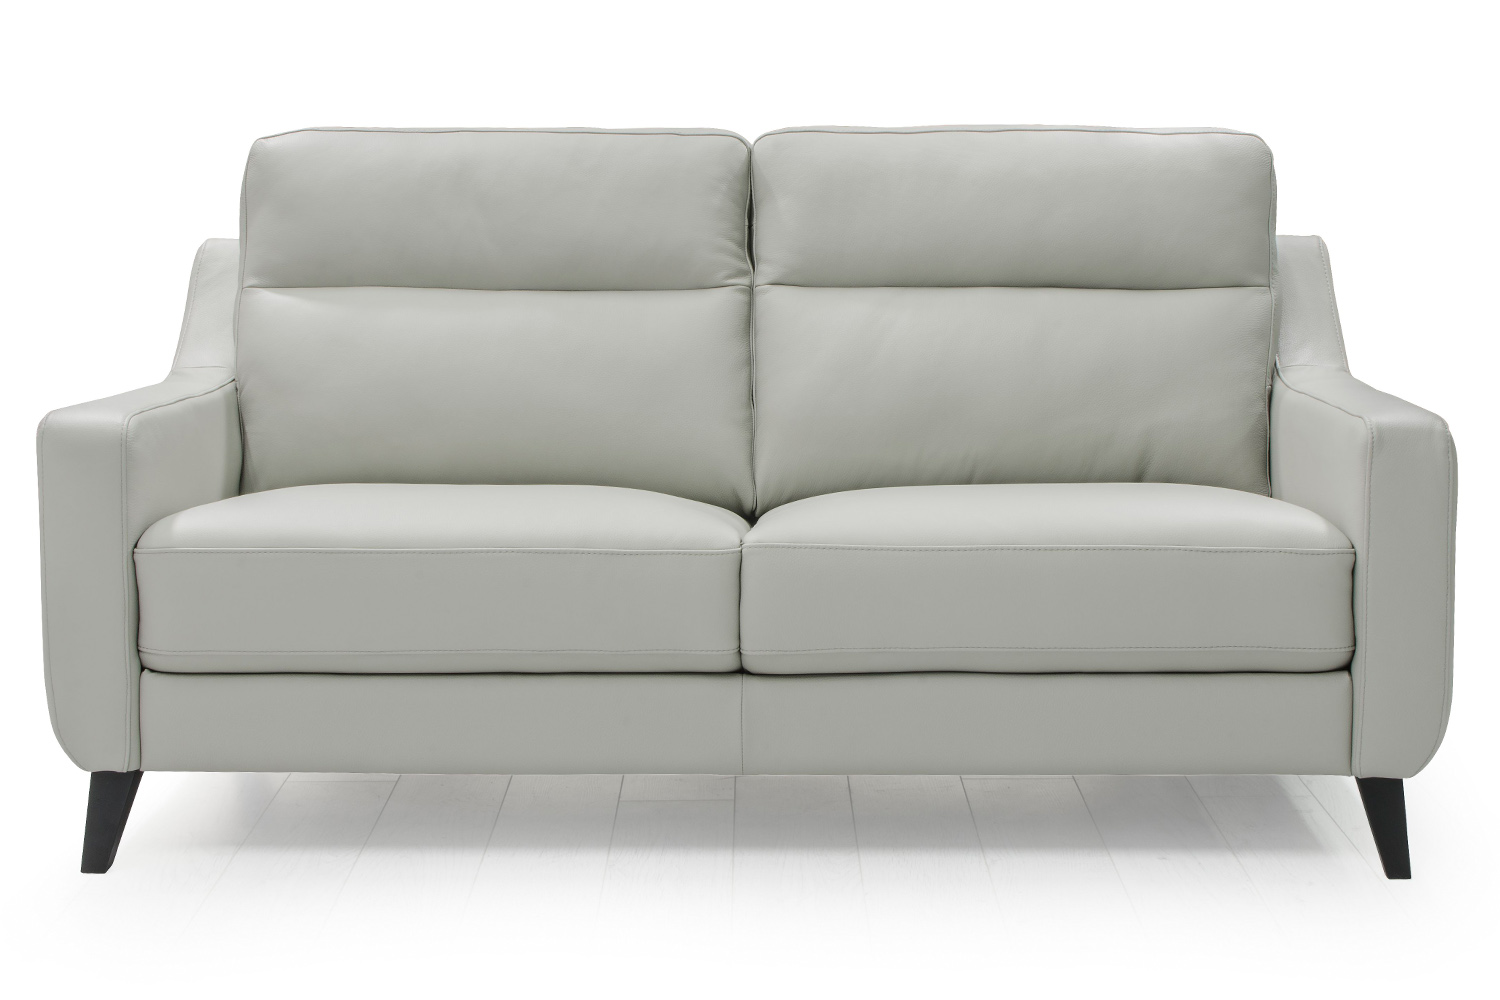 grey leather sofas harveys what to clean a sofa with 3 seater pk 31 by poul